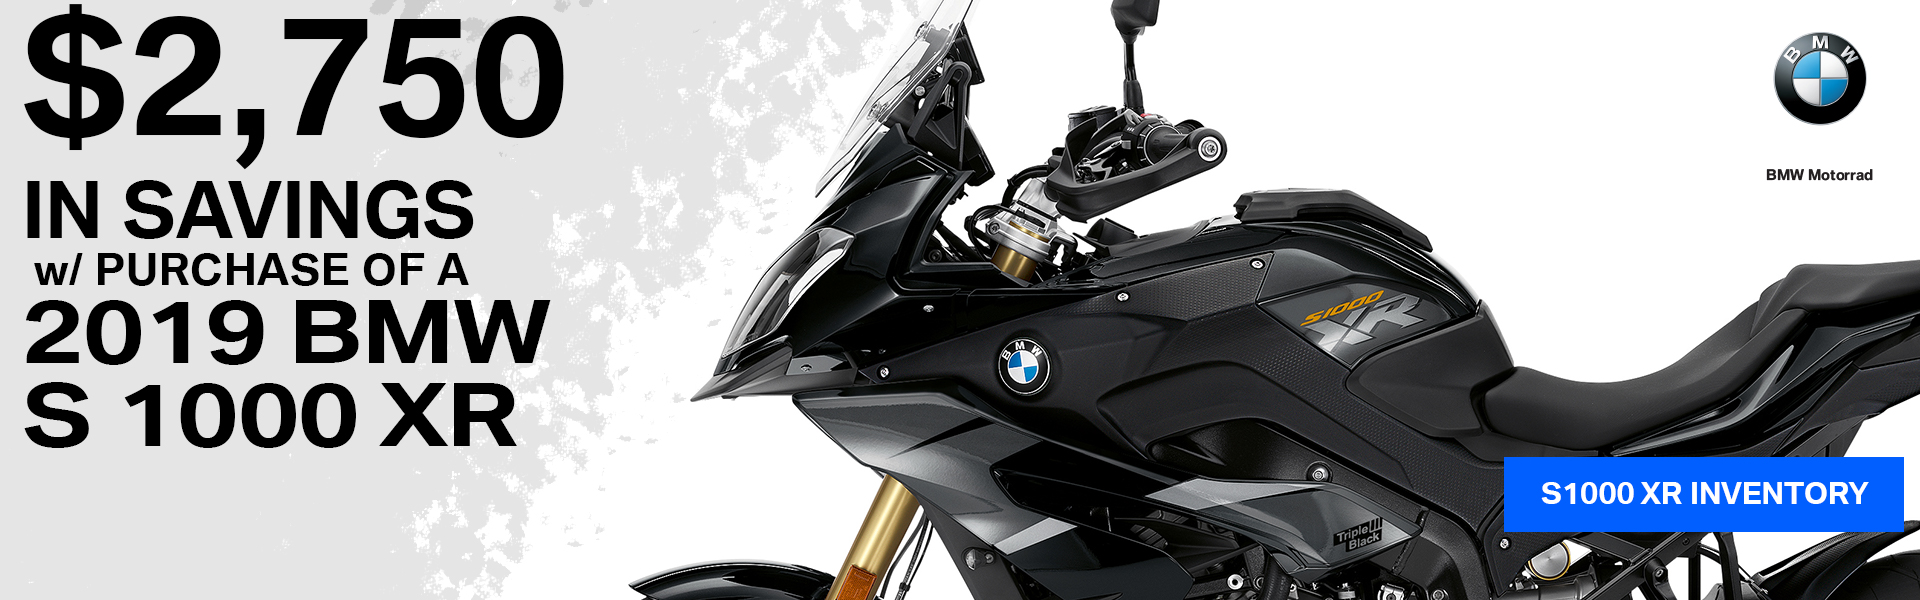 $2750 in Savings with Purchase of a 2019 BMW S 1000 XR